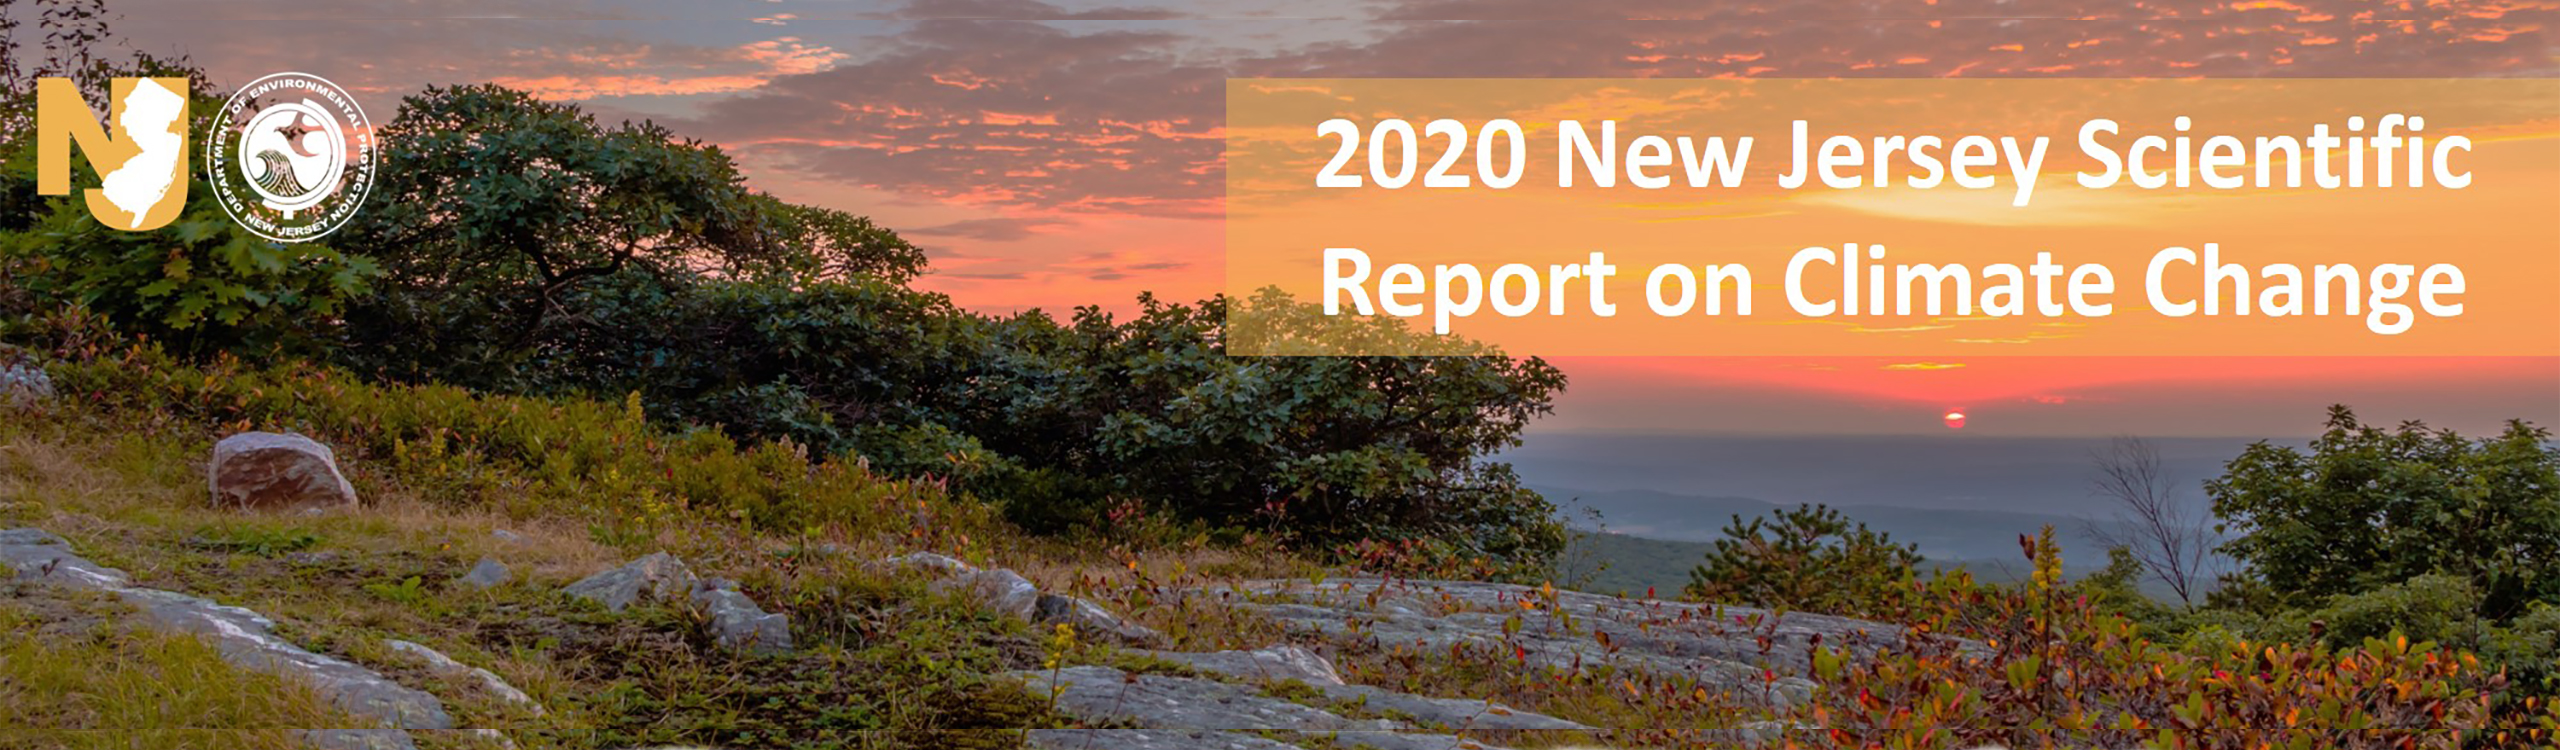 NJ Climate Change Report 2020